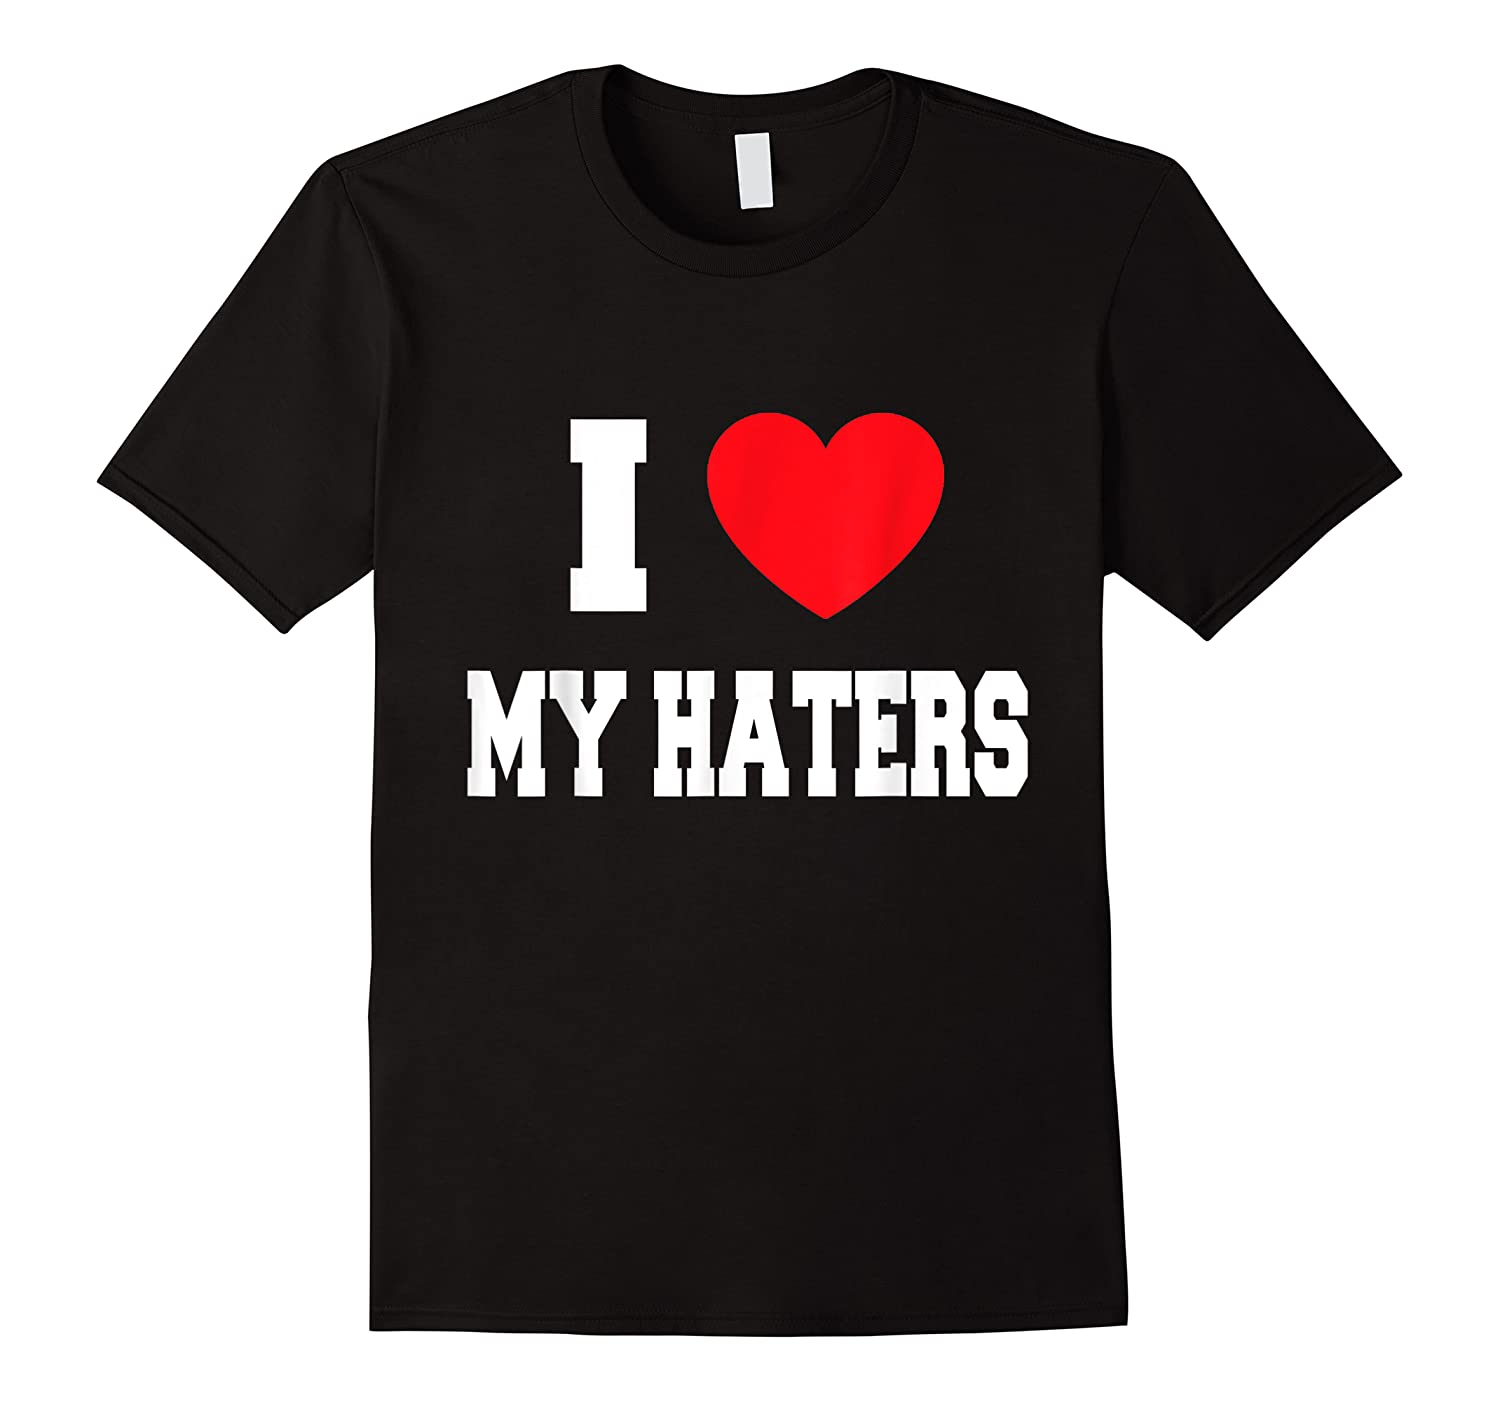 Love My Haters Shirts